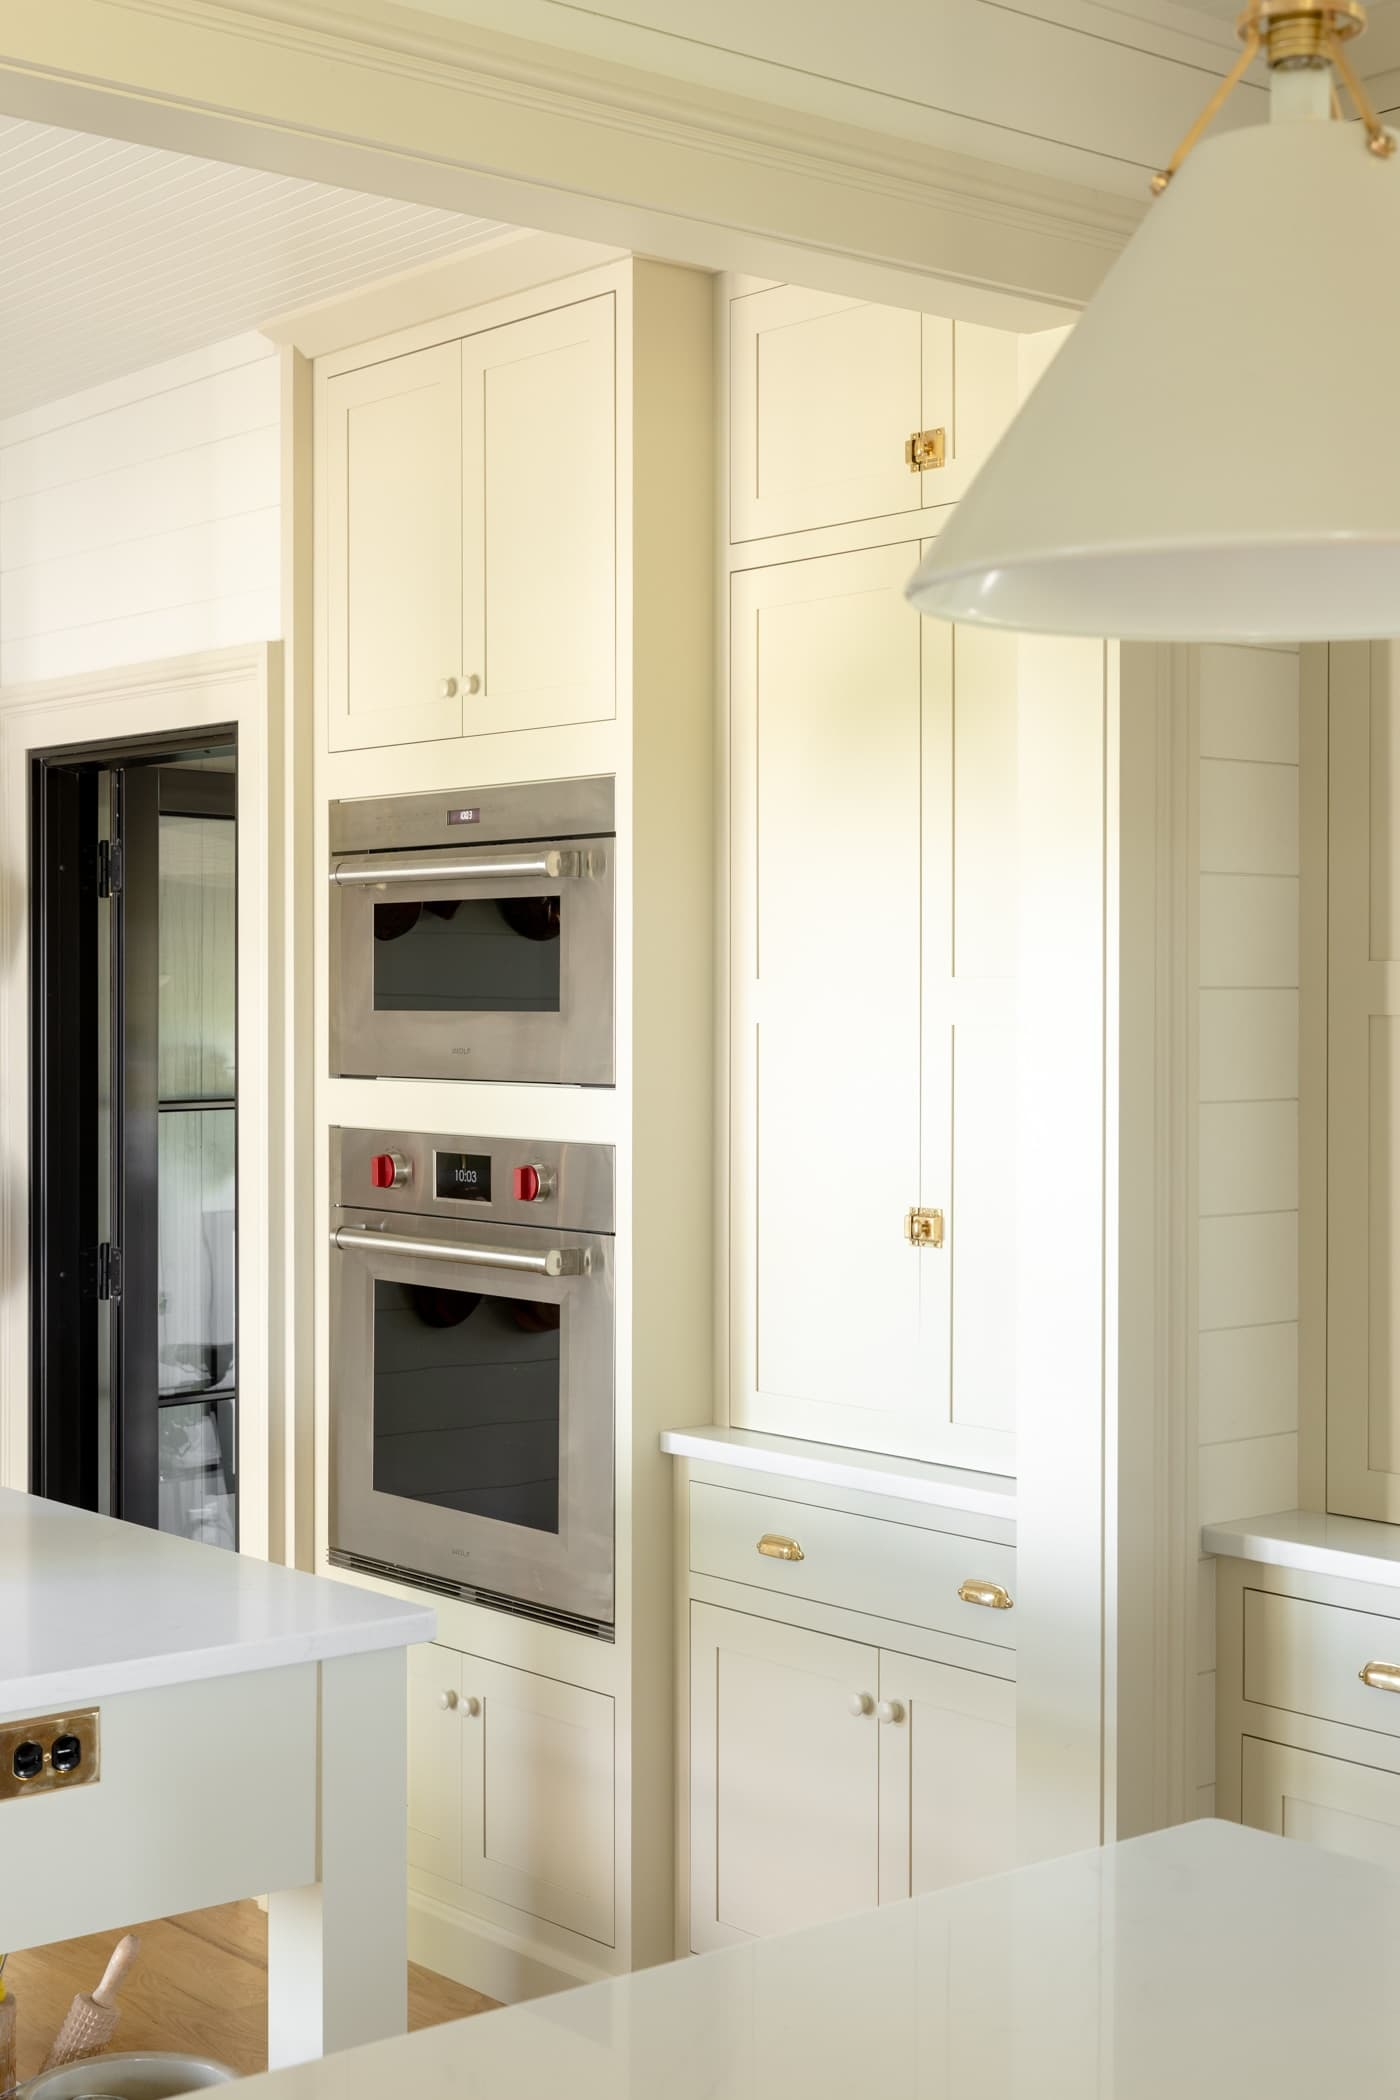 Wall oven in a creamy white cabinet with pantry cabinet right beside it with black door in distance